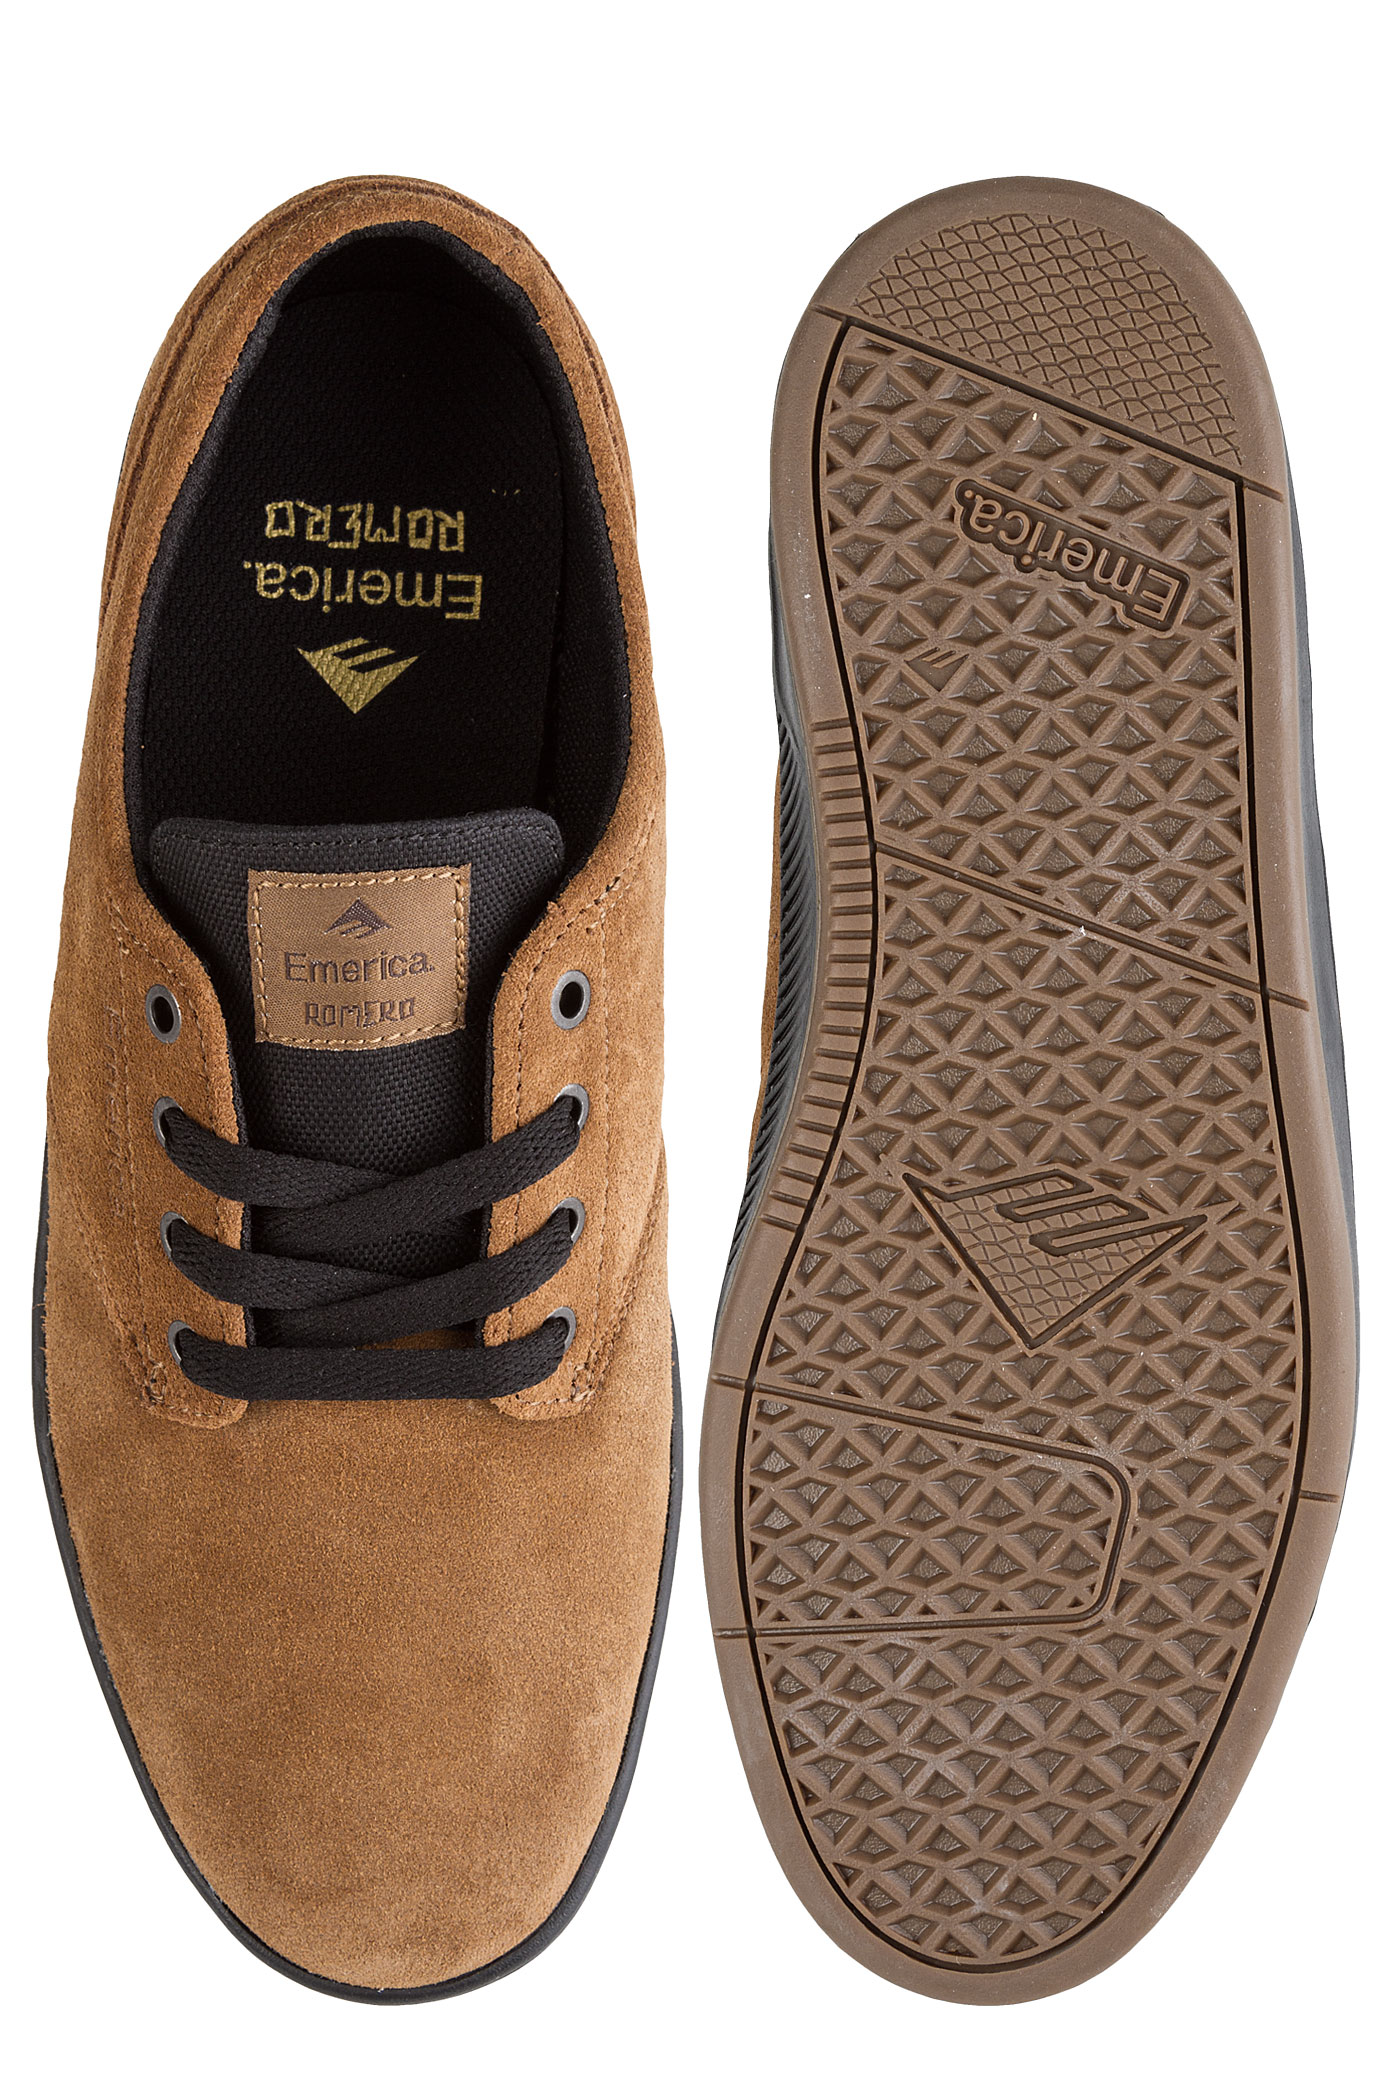 Laced Chaussuretan The Romero Black Emerica 4j35ARqL